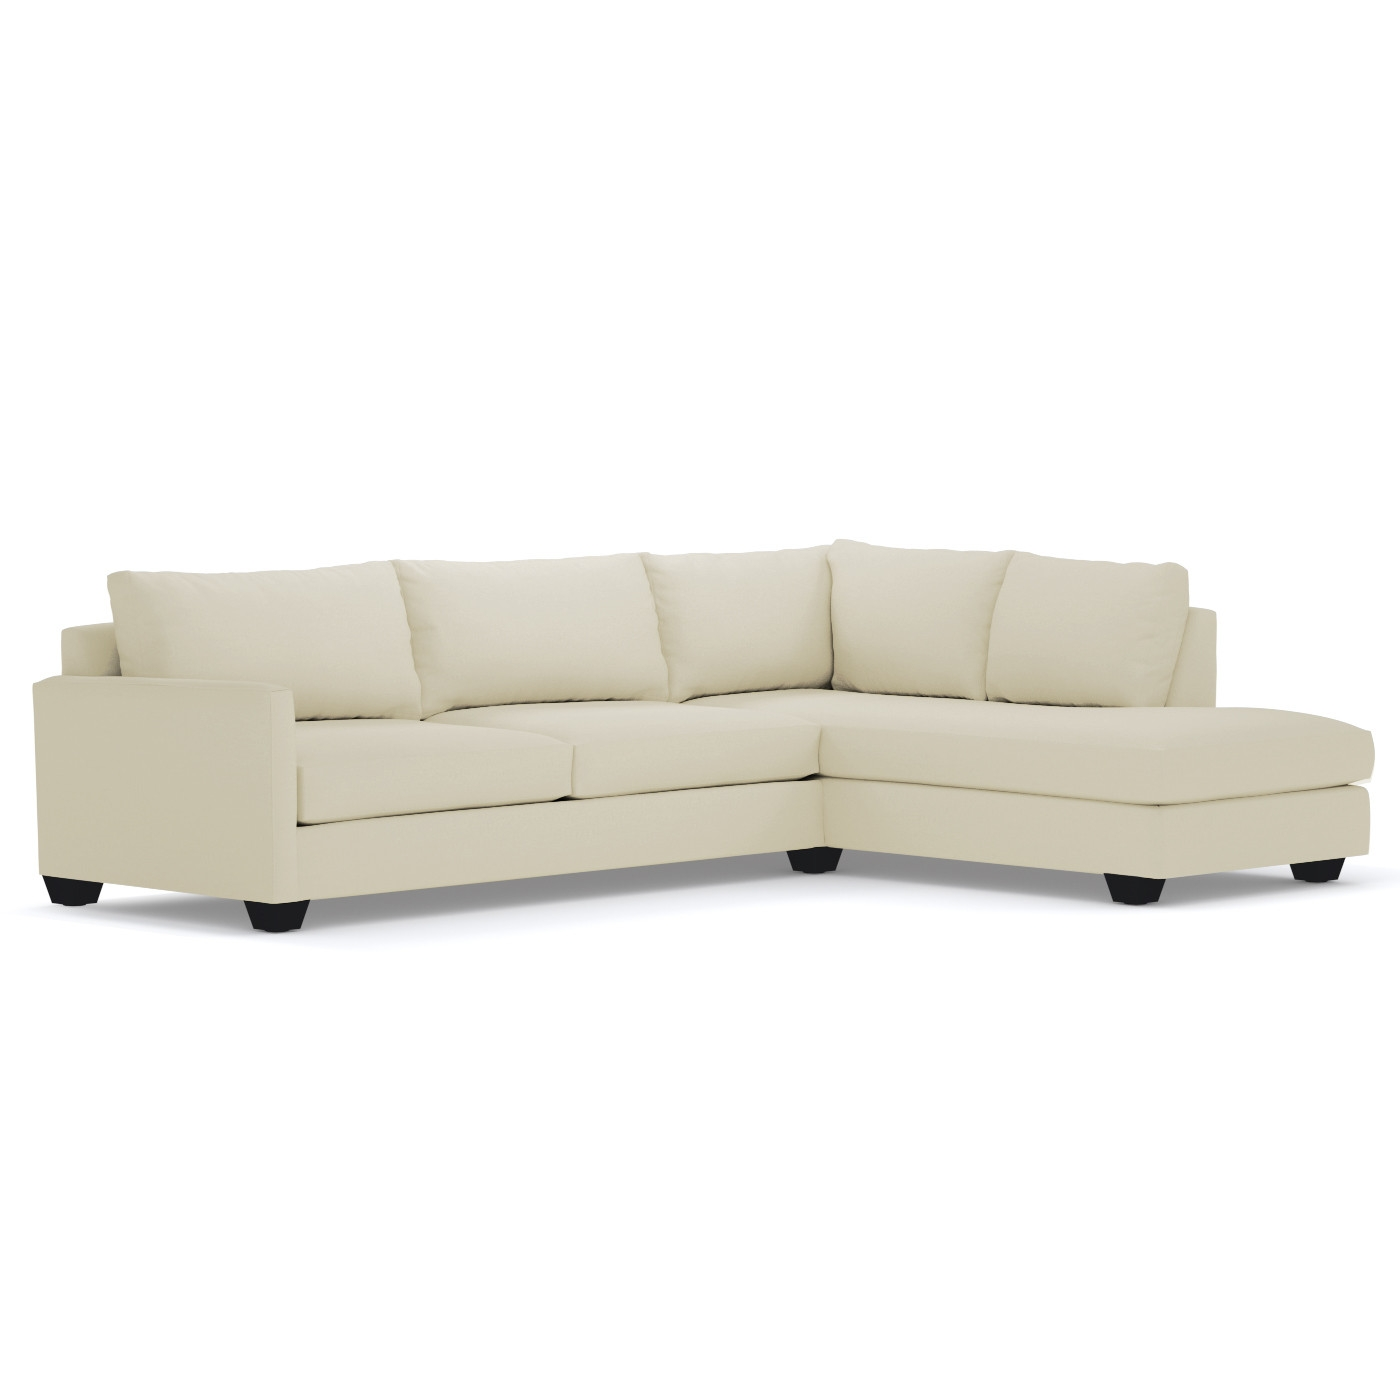 albany industries leather sofa bed quick delivery uk reviews review home co